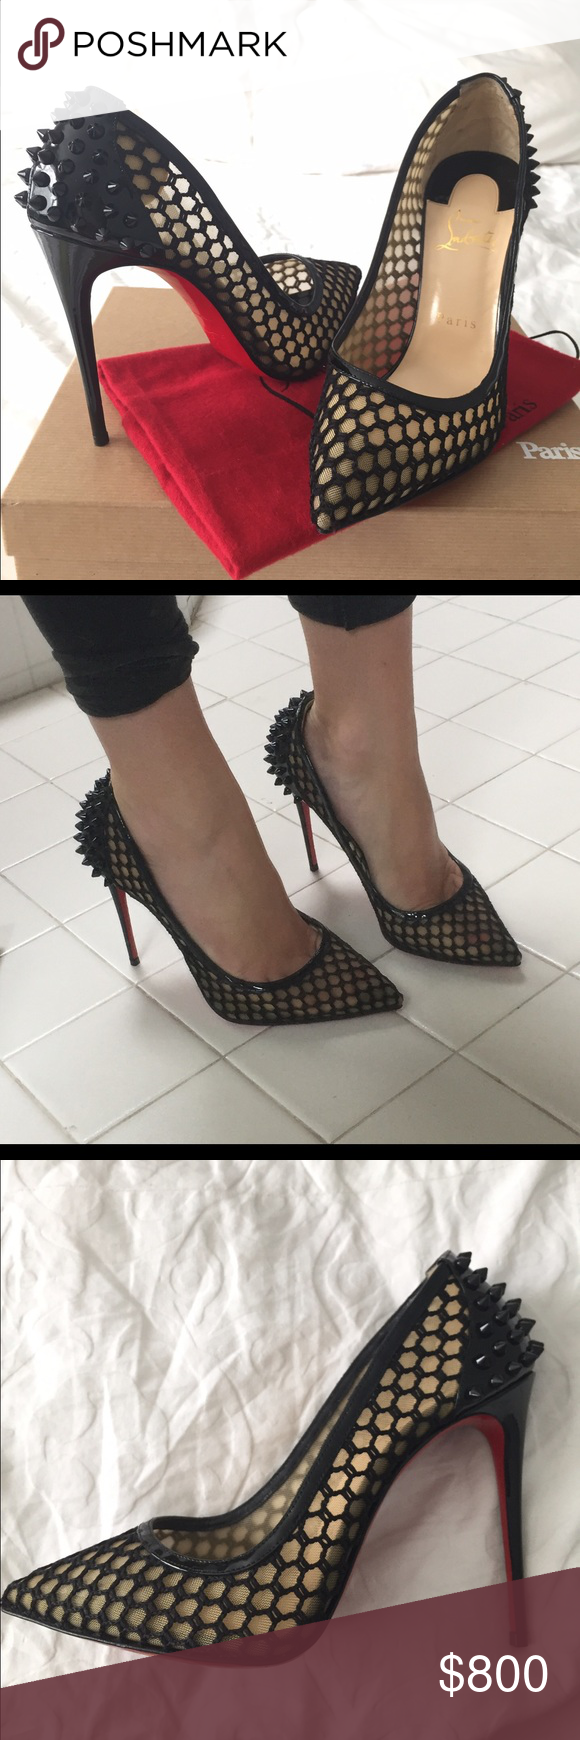 57c99d2dcc9b Christian Louboutin Guni Pump 100mm Knot Patent Comfortable with a classic  look! Pointed toe